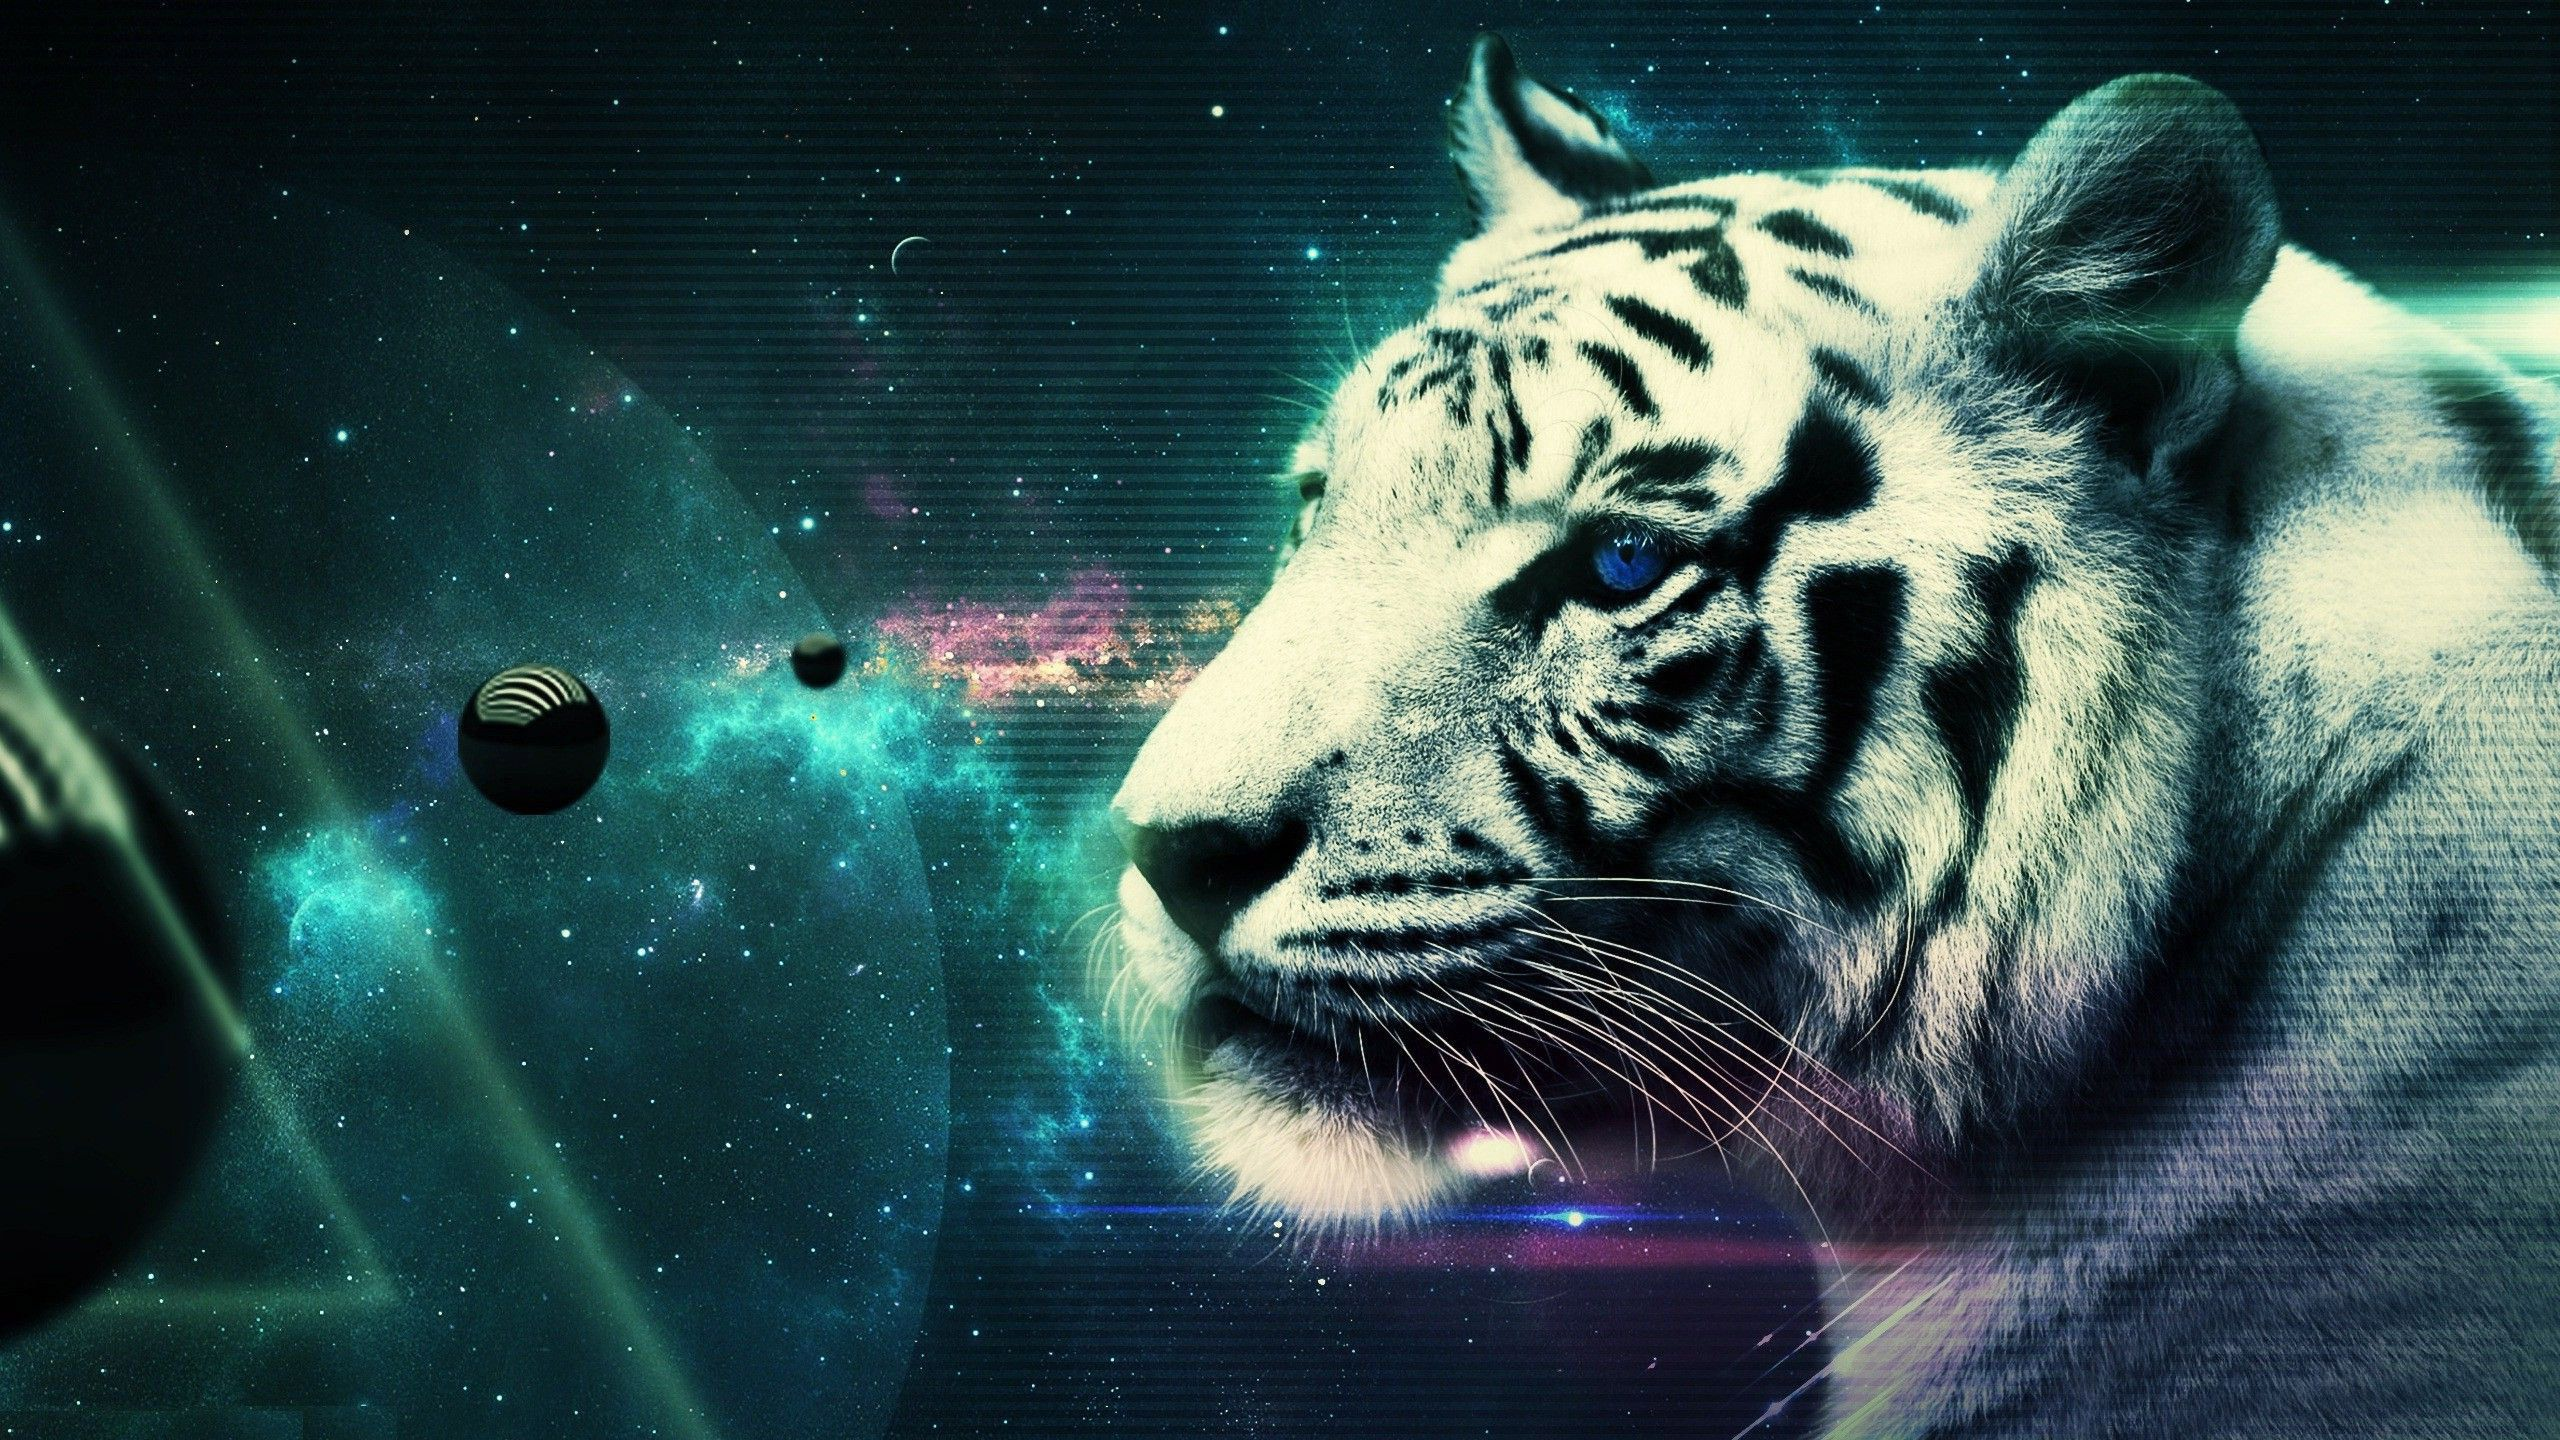 2560x1440 White Tiger Wallpapers Gallery (81 Plus) - juegosrev.com - Page 2 of ...